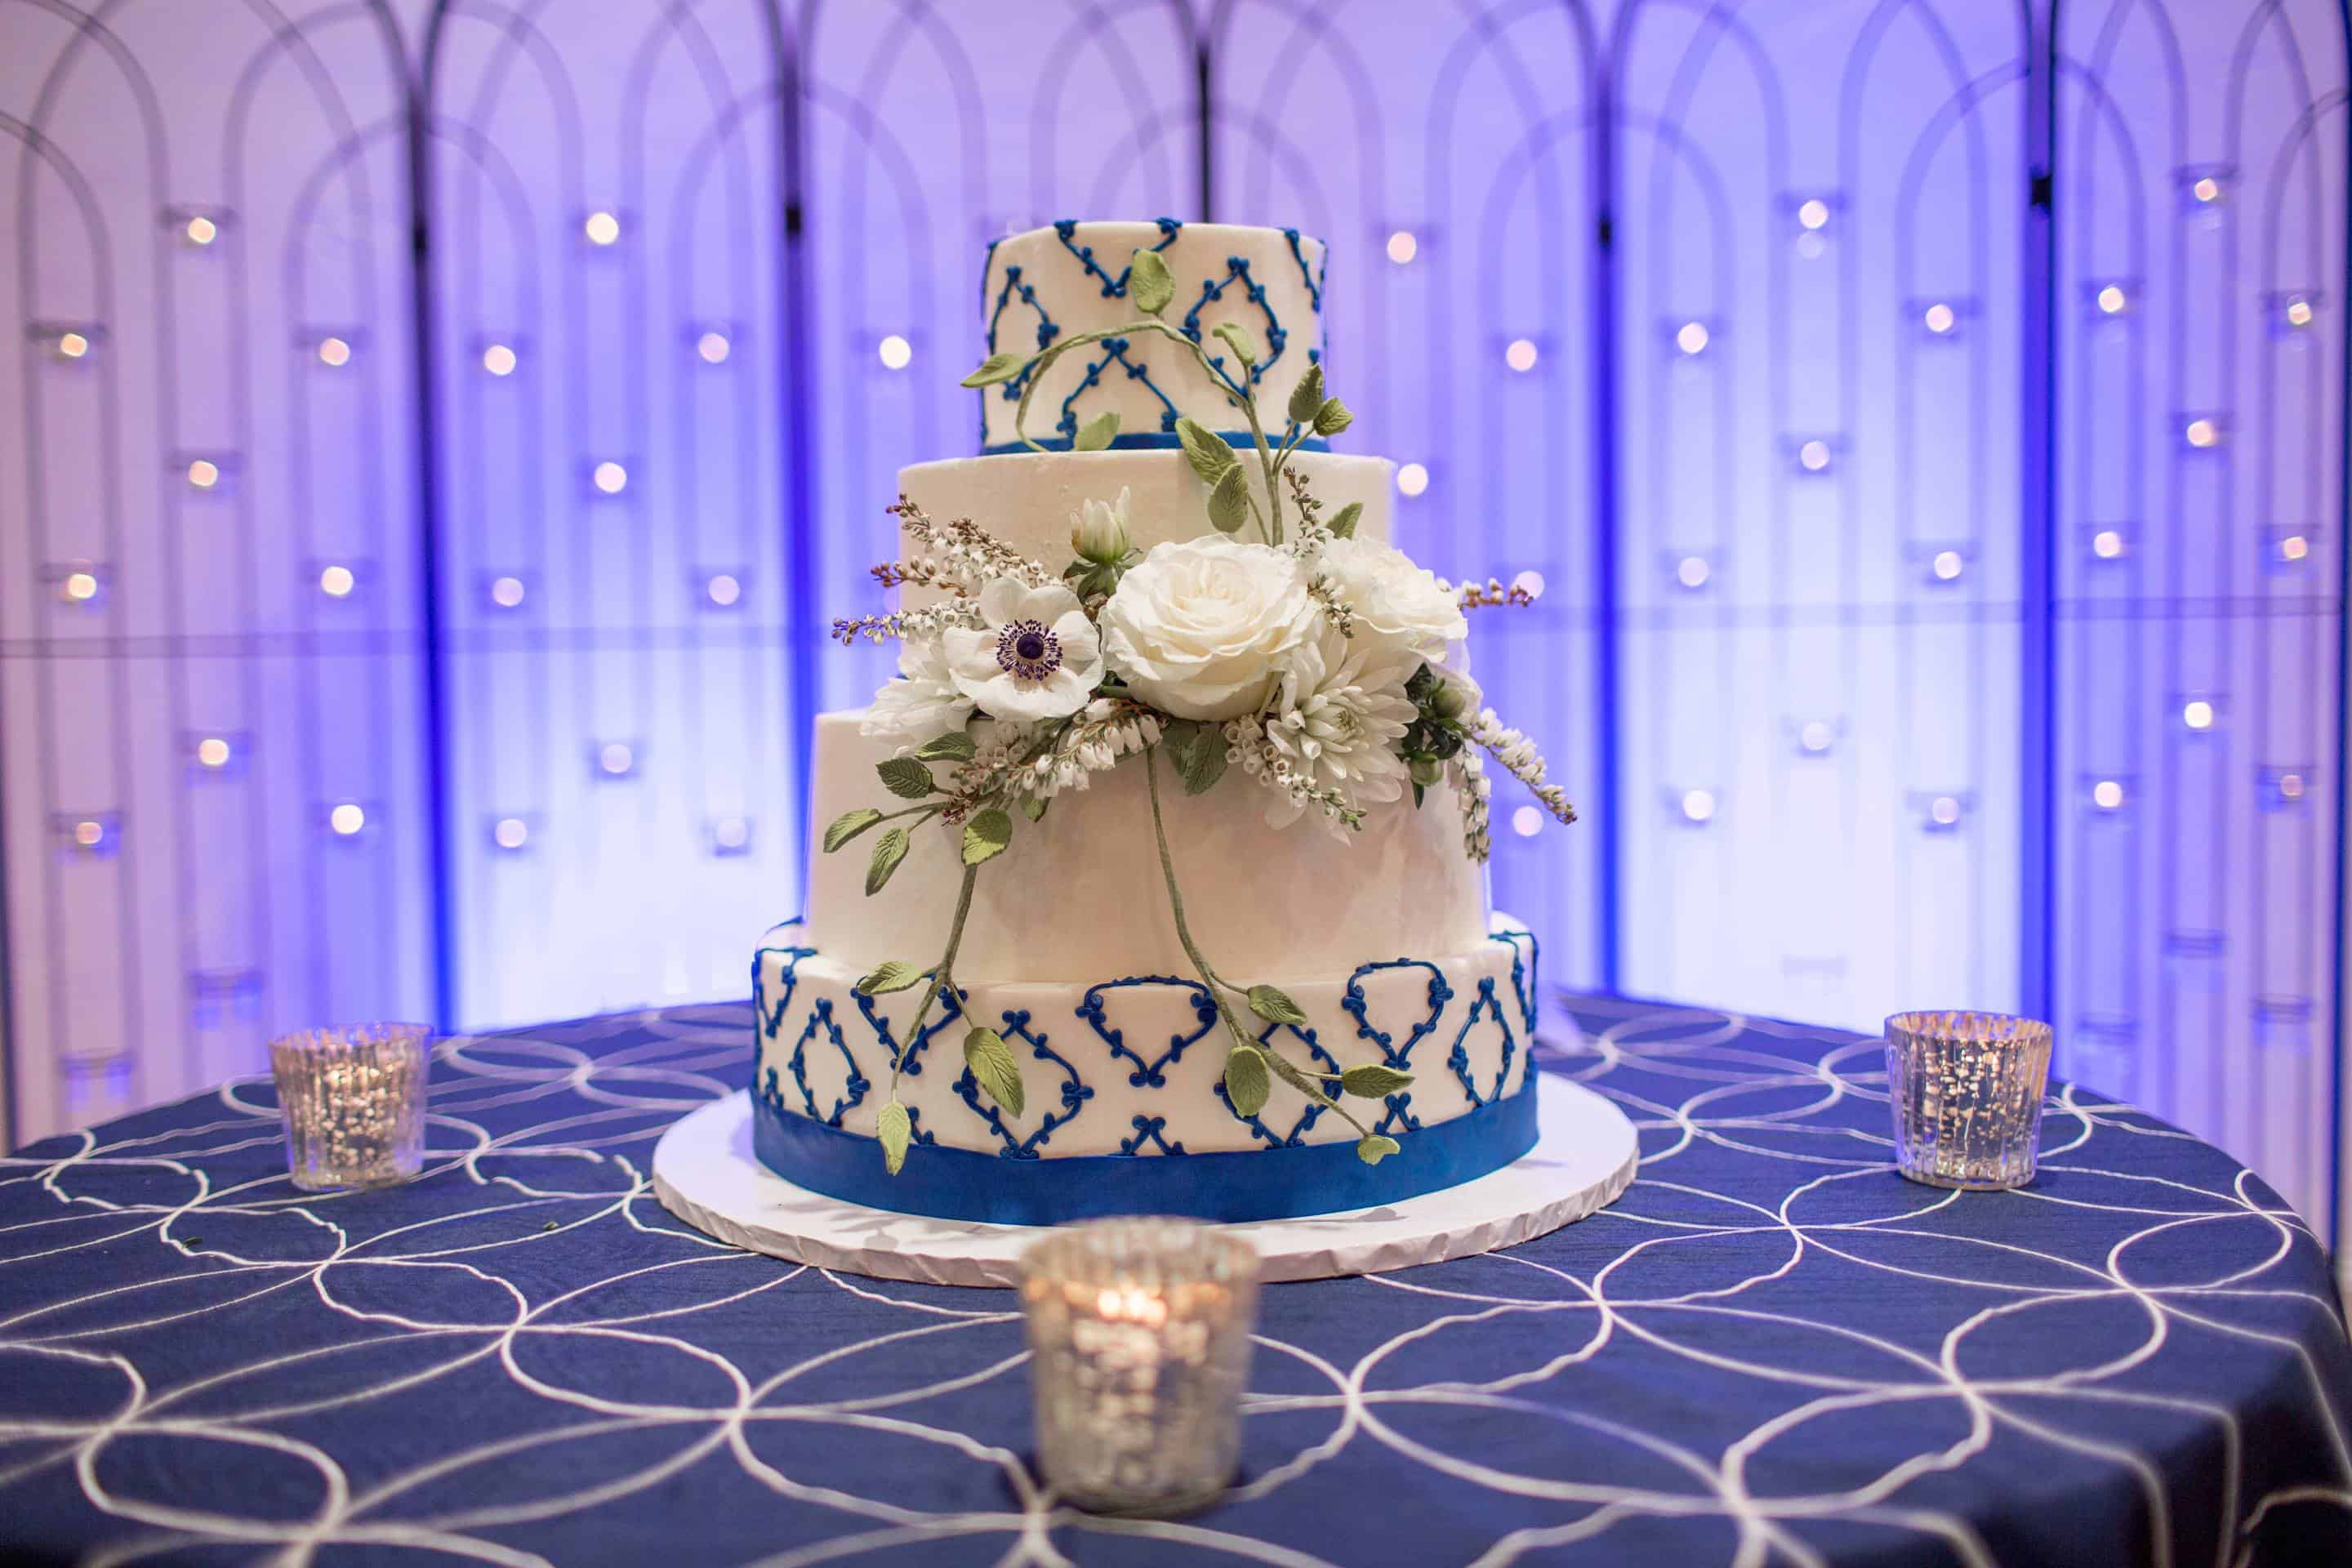 Blue and White Wedding Cake with Diamond Design and Blue Uplighting